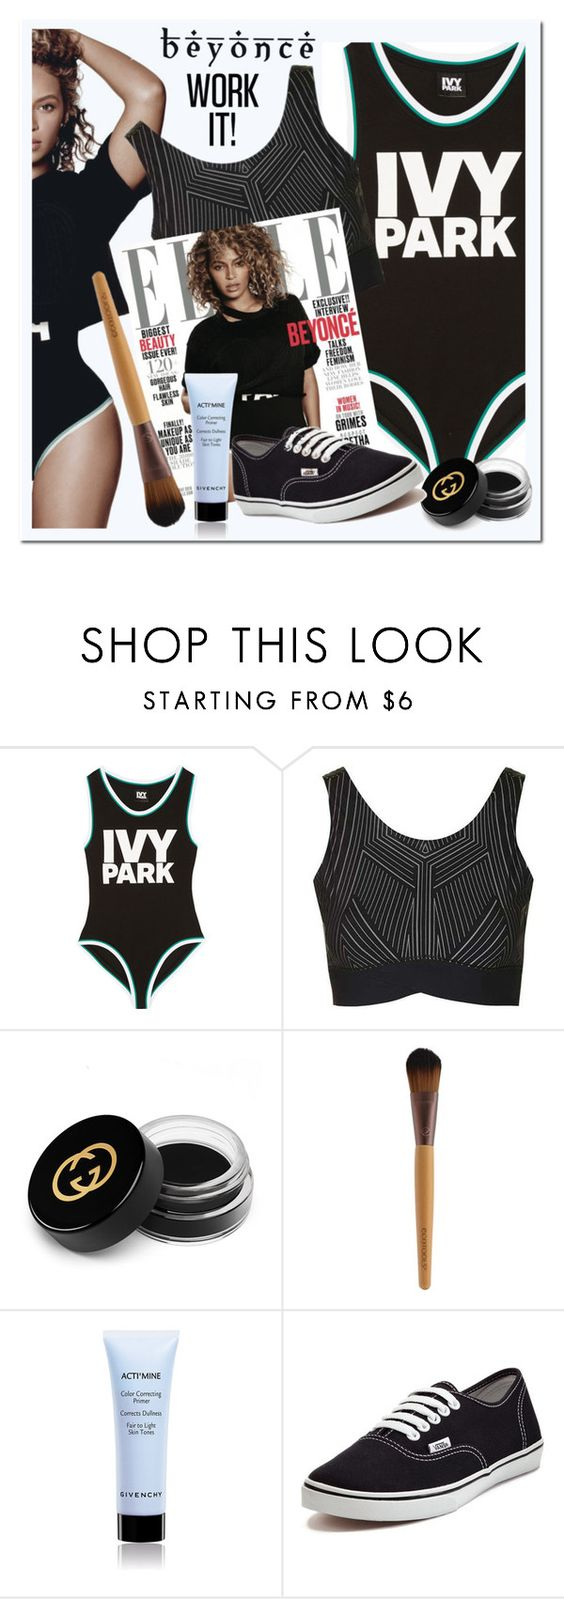 """Slay All Day: Style Beyonce's Ivy Park!"" by ewa-naukowicz-wojcik ❤ liked on Polyvore featuring Ivy Park, Topshop, Gucci, Givenchy, Vans and Beyonce"